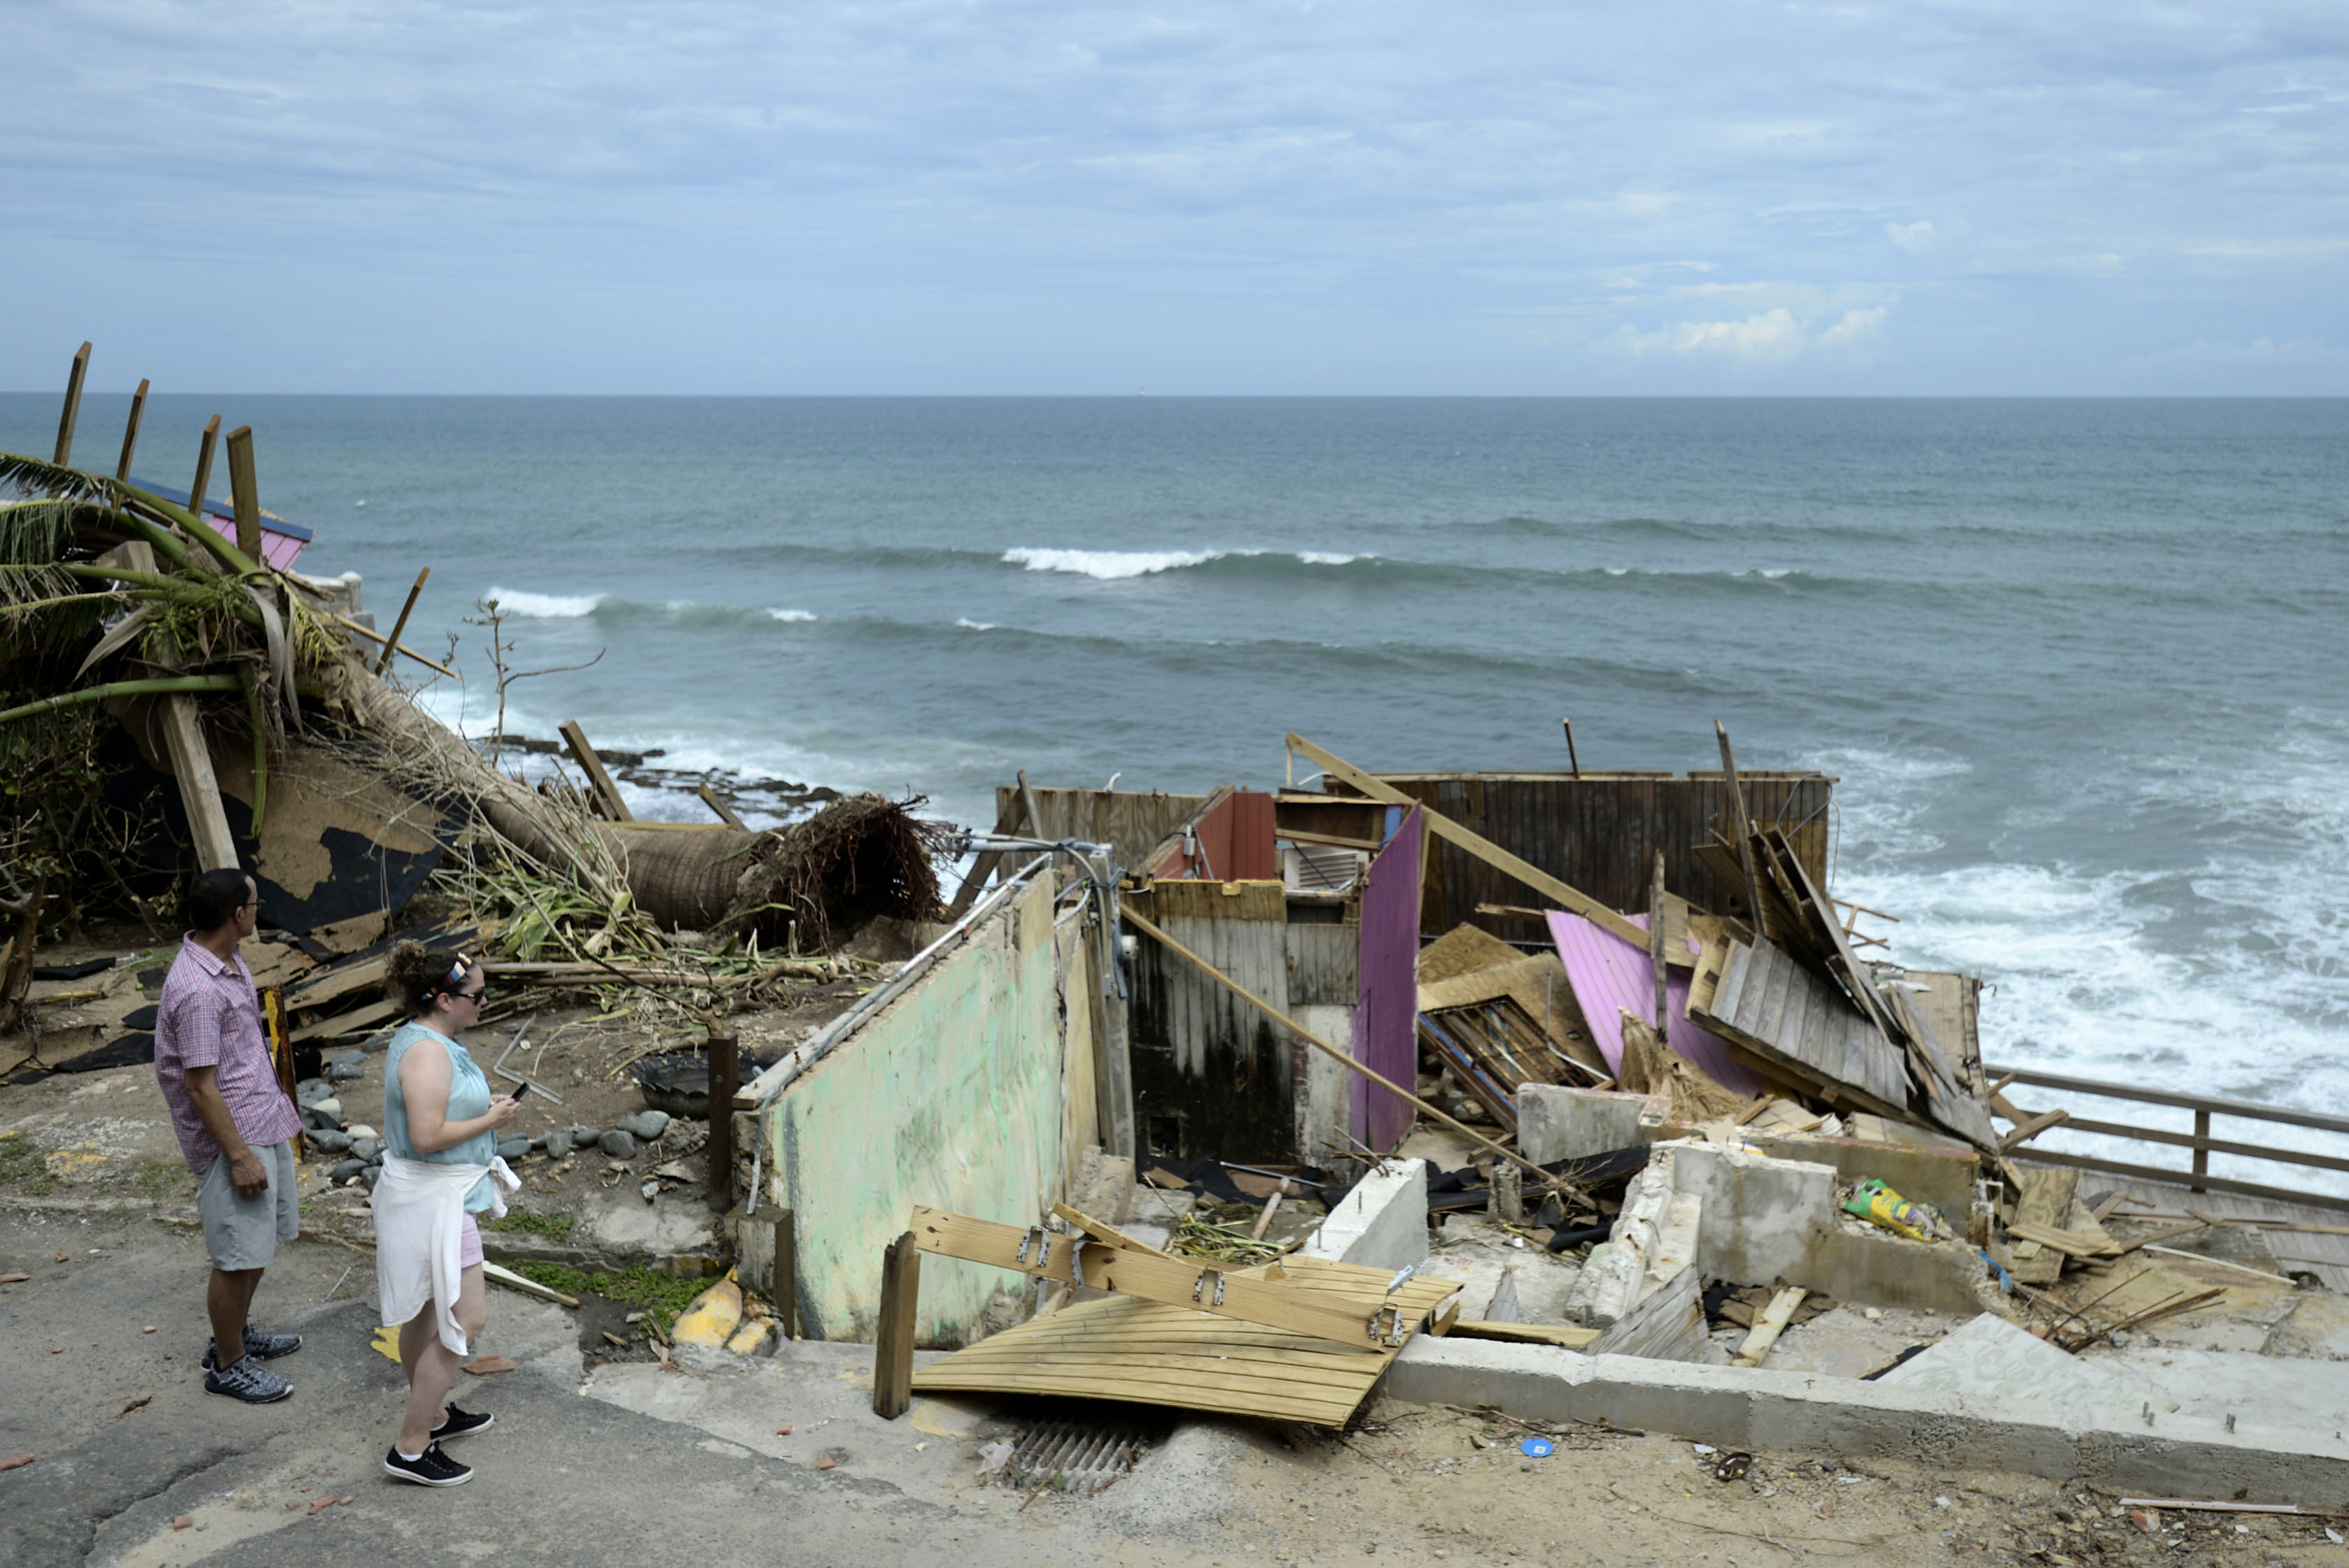 "<div class=""meta image-caption""><div class=""origin-logo origin-image ap""><span>AP</span></div><span class=""caption-text"">Hurricane Maria hit Puerto Rico, leaving behind devastation and more than 1 million without power (AP Photo/Carlos Giusti)</span></div>"